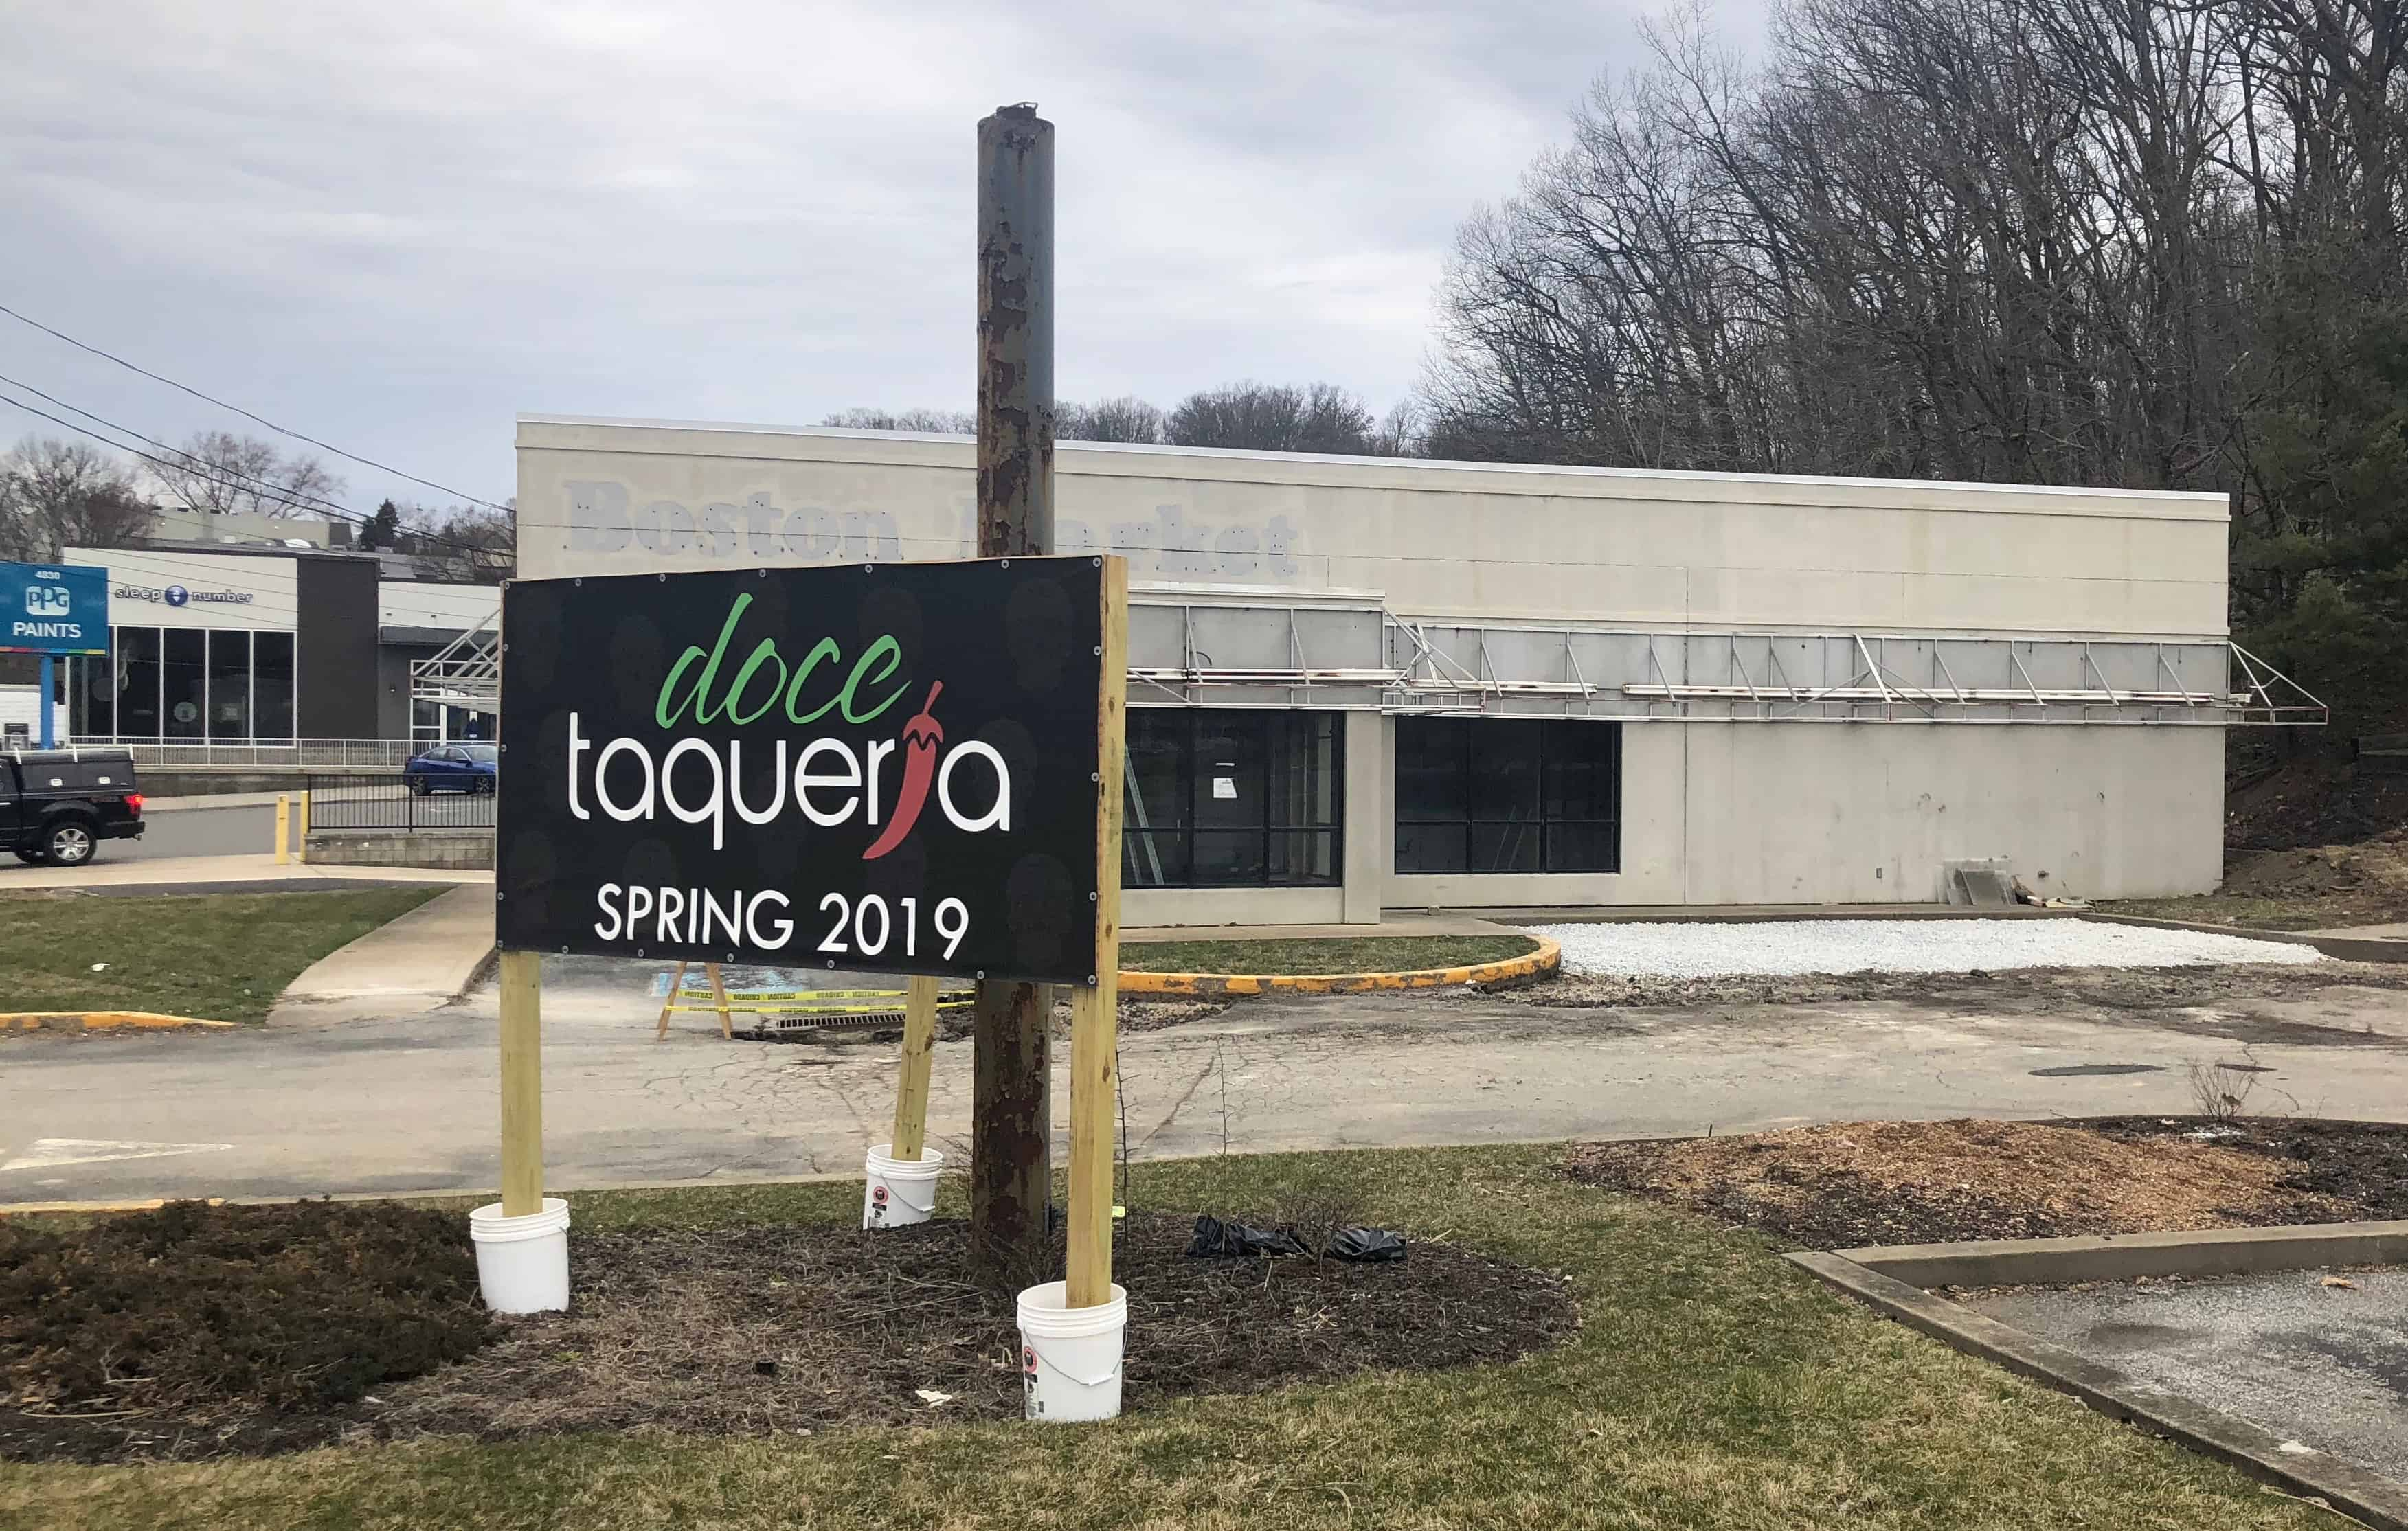 doce taqueria opening second location